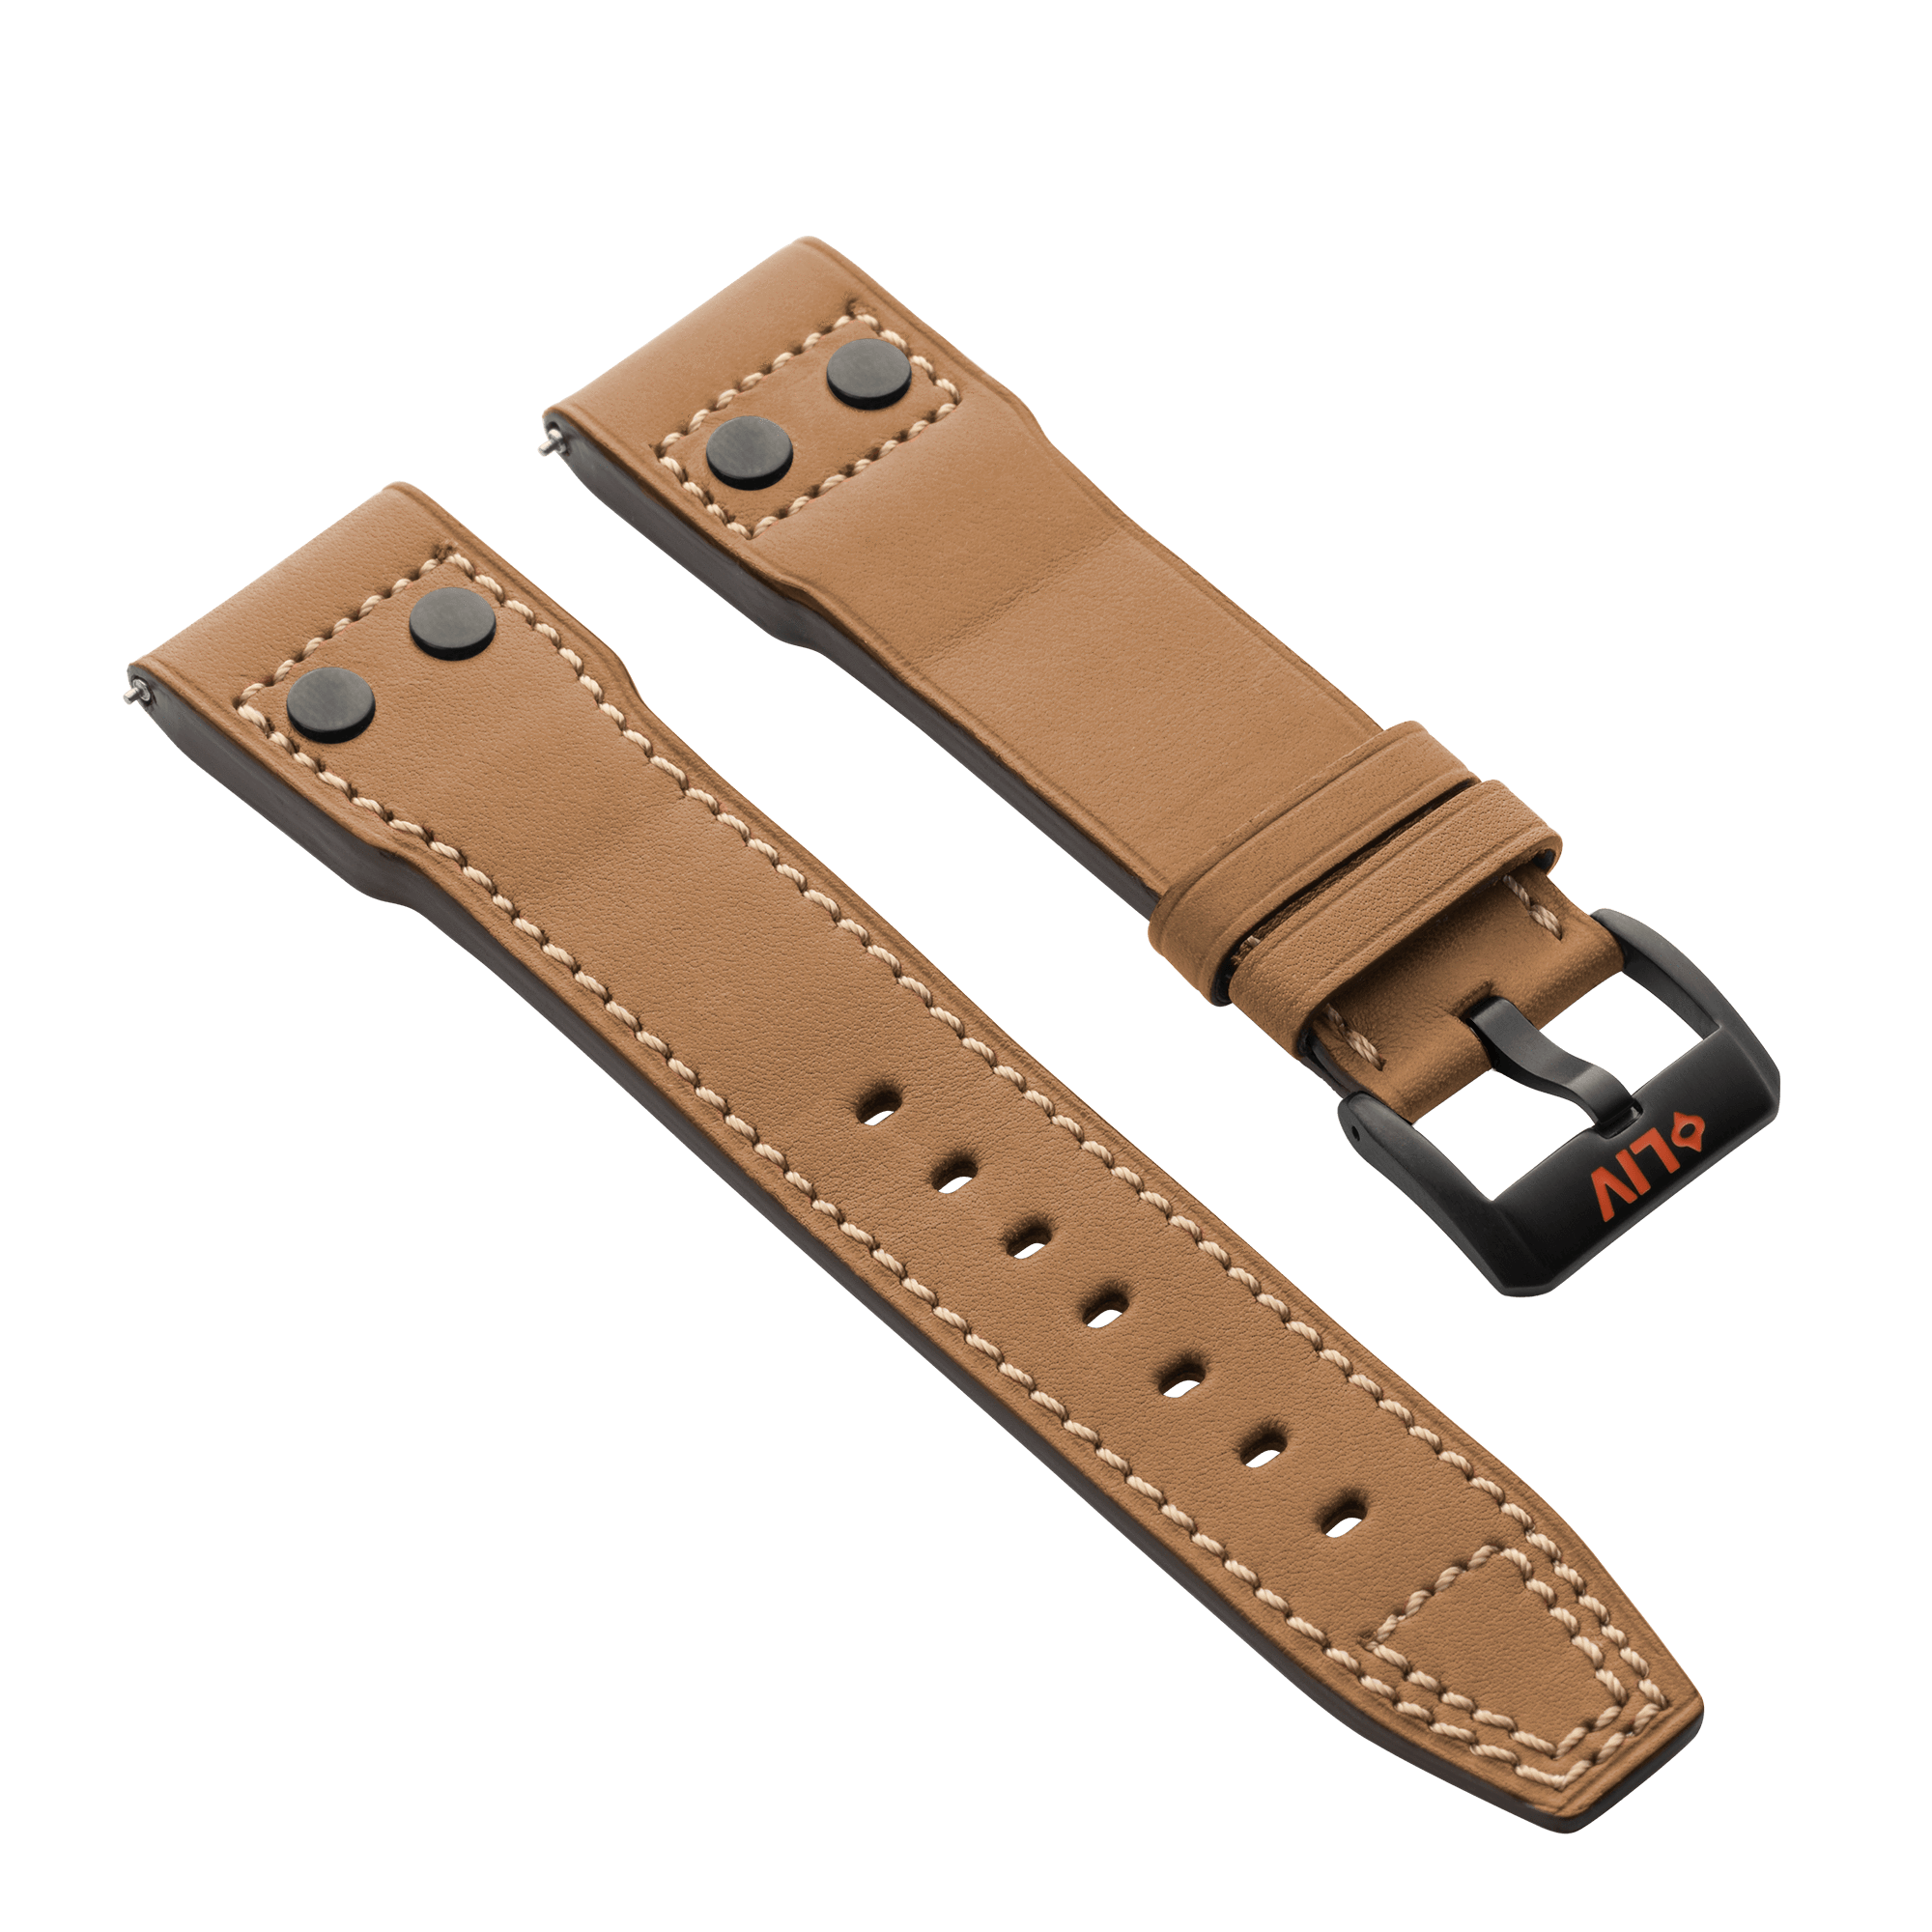 Pilot's Barenia Leather | 23mm - LIV Swiss Watches